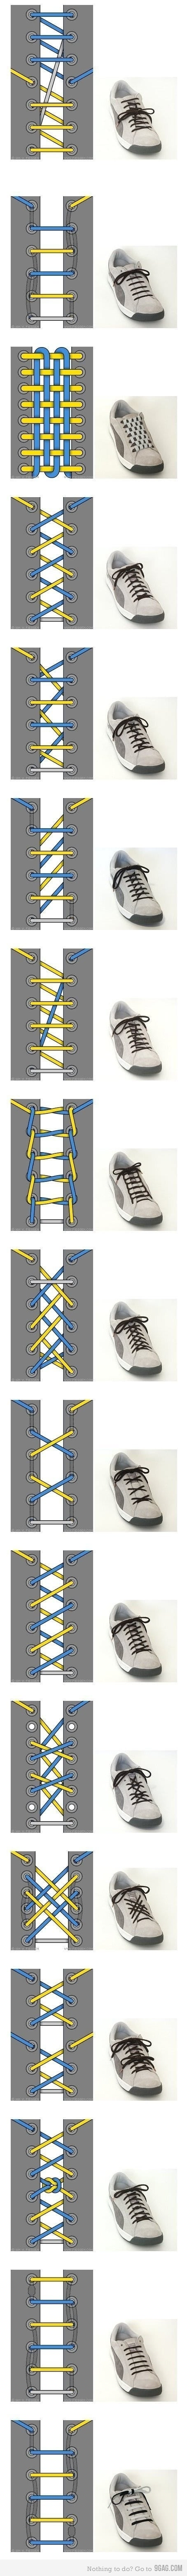 17 Ways To Tie Your Shoes